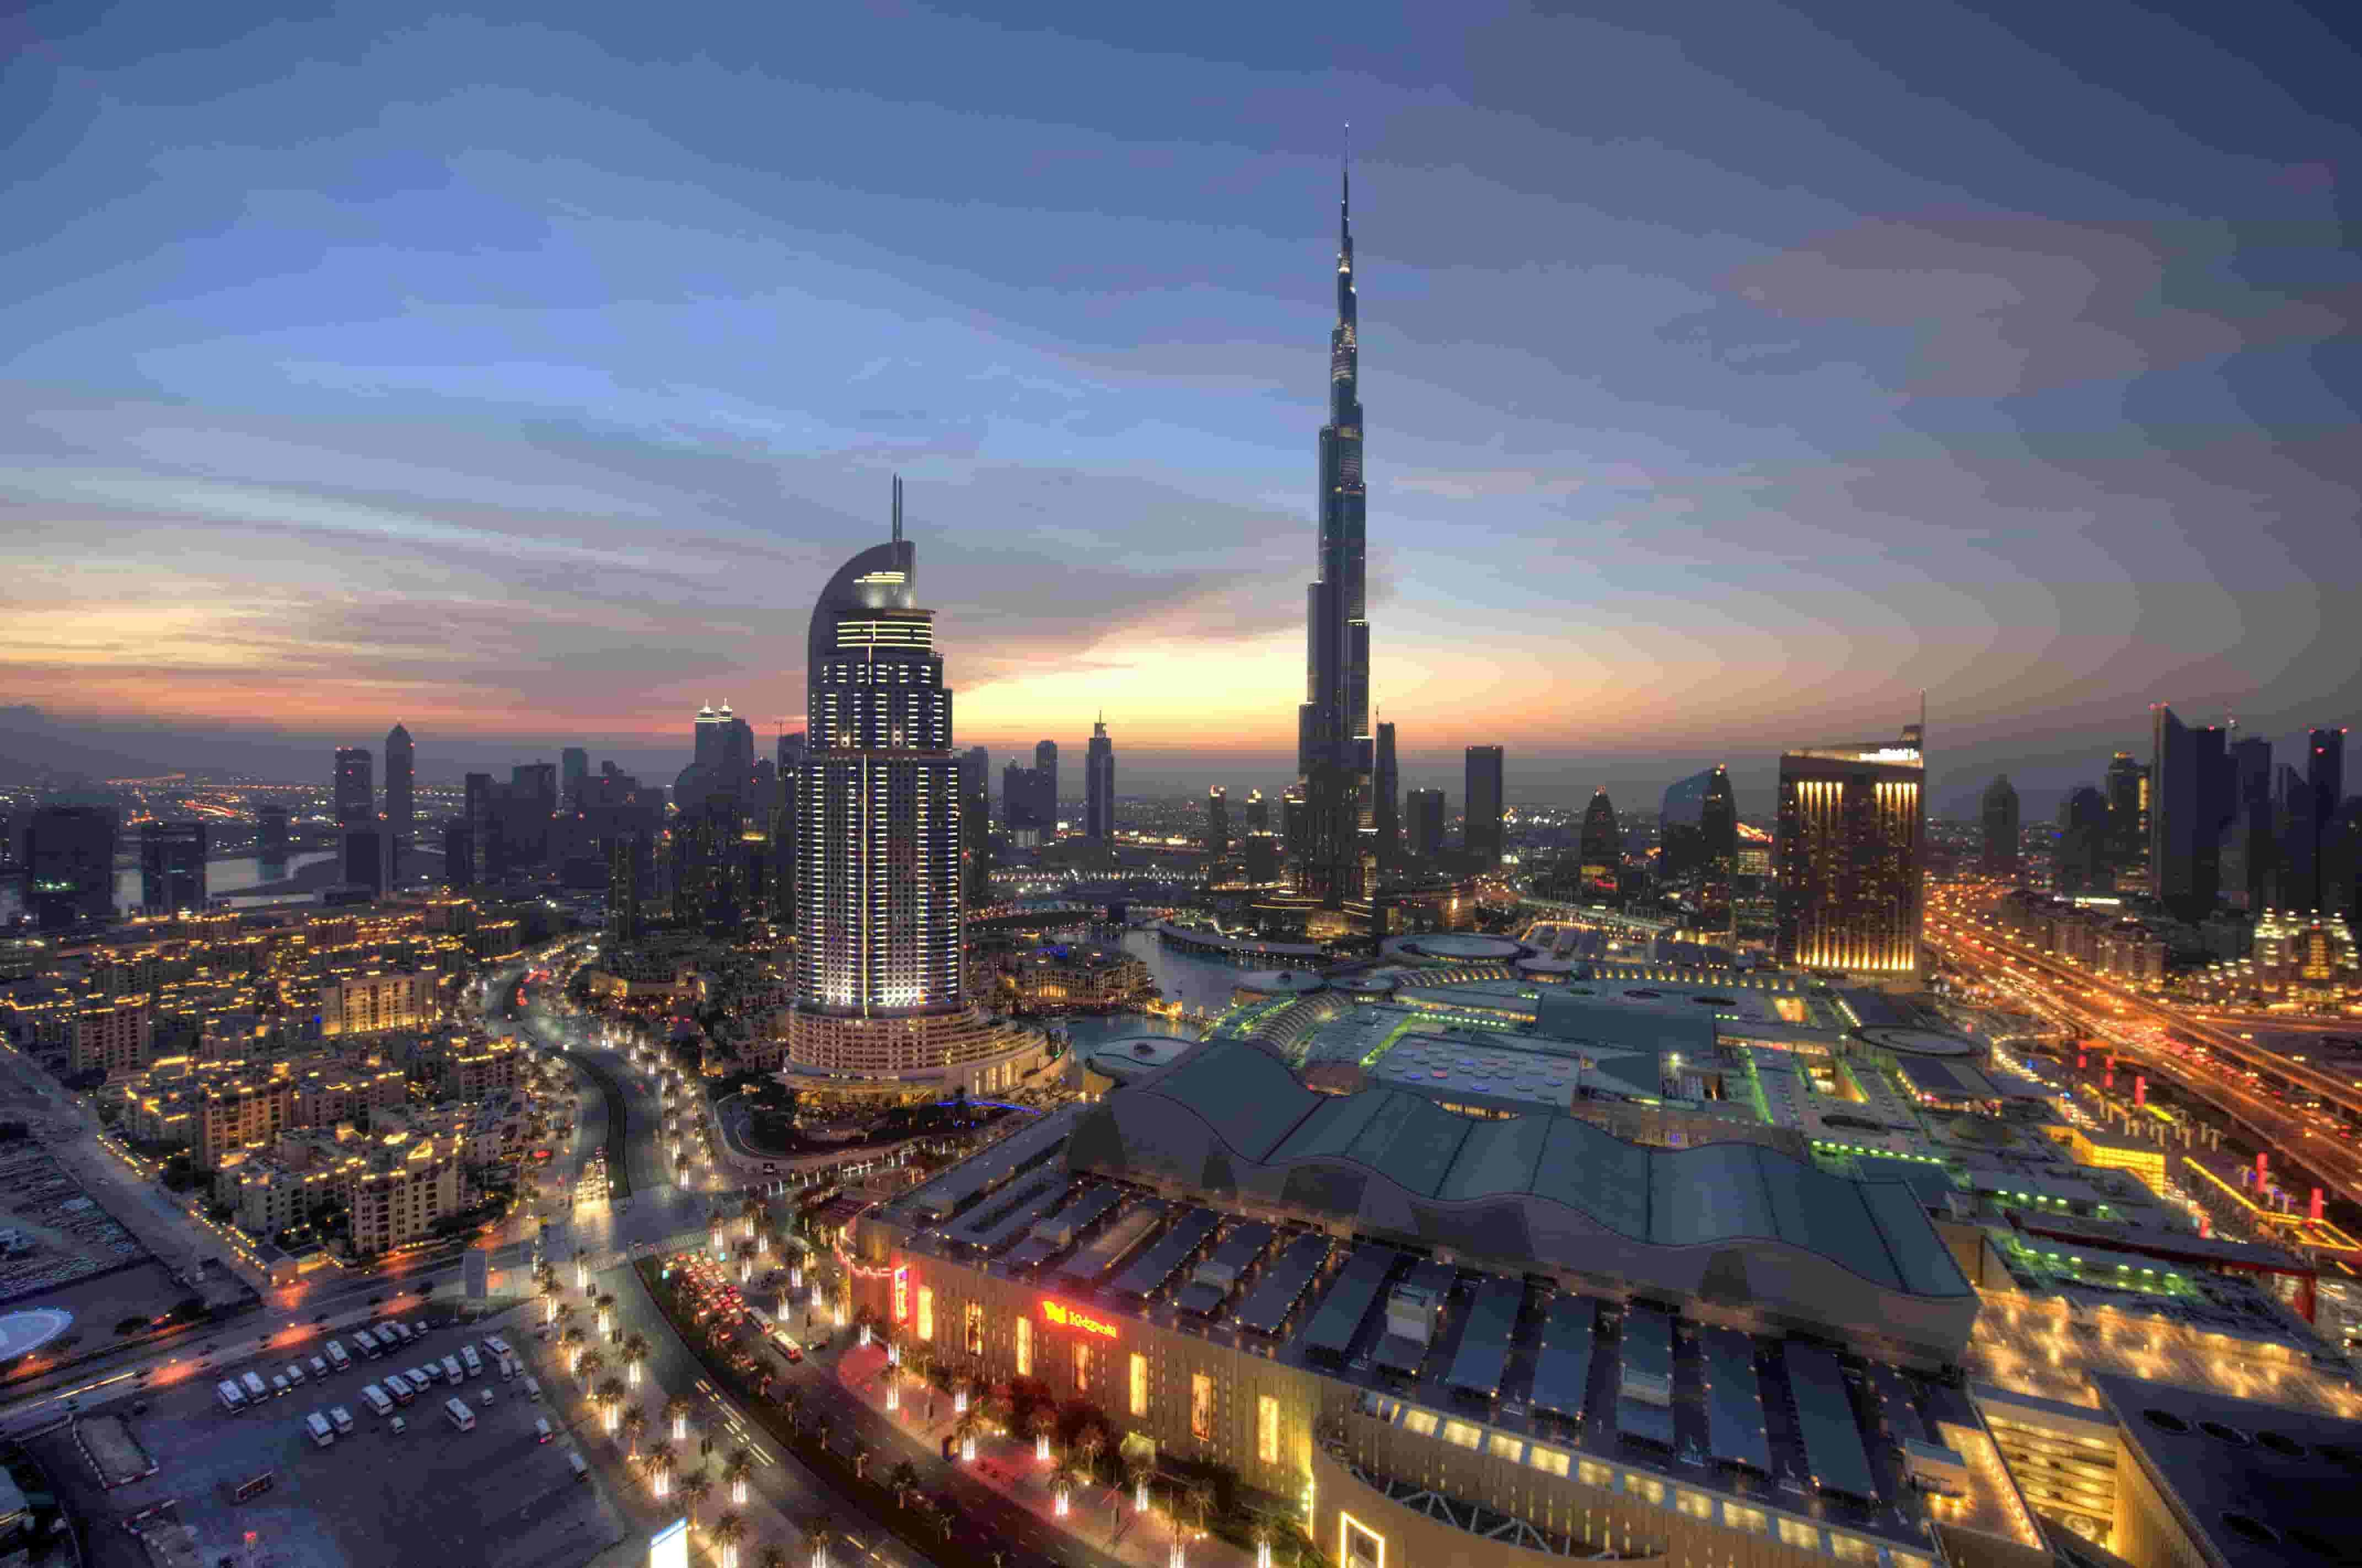 Properties for Sale in Arabian Ranches Dubai